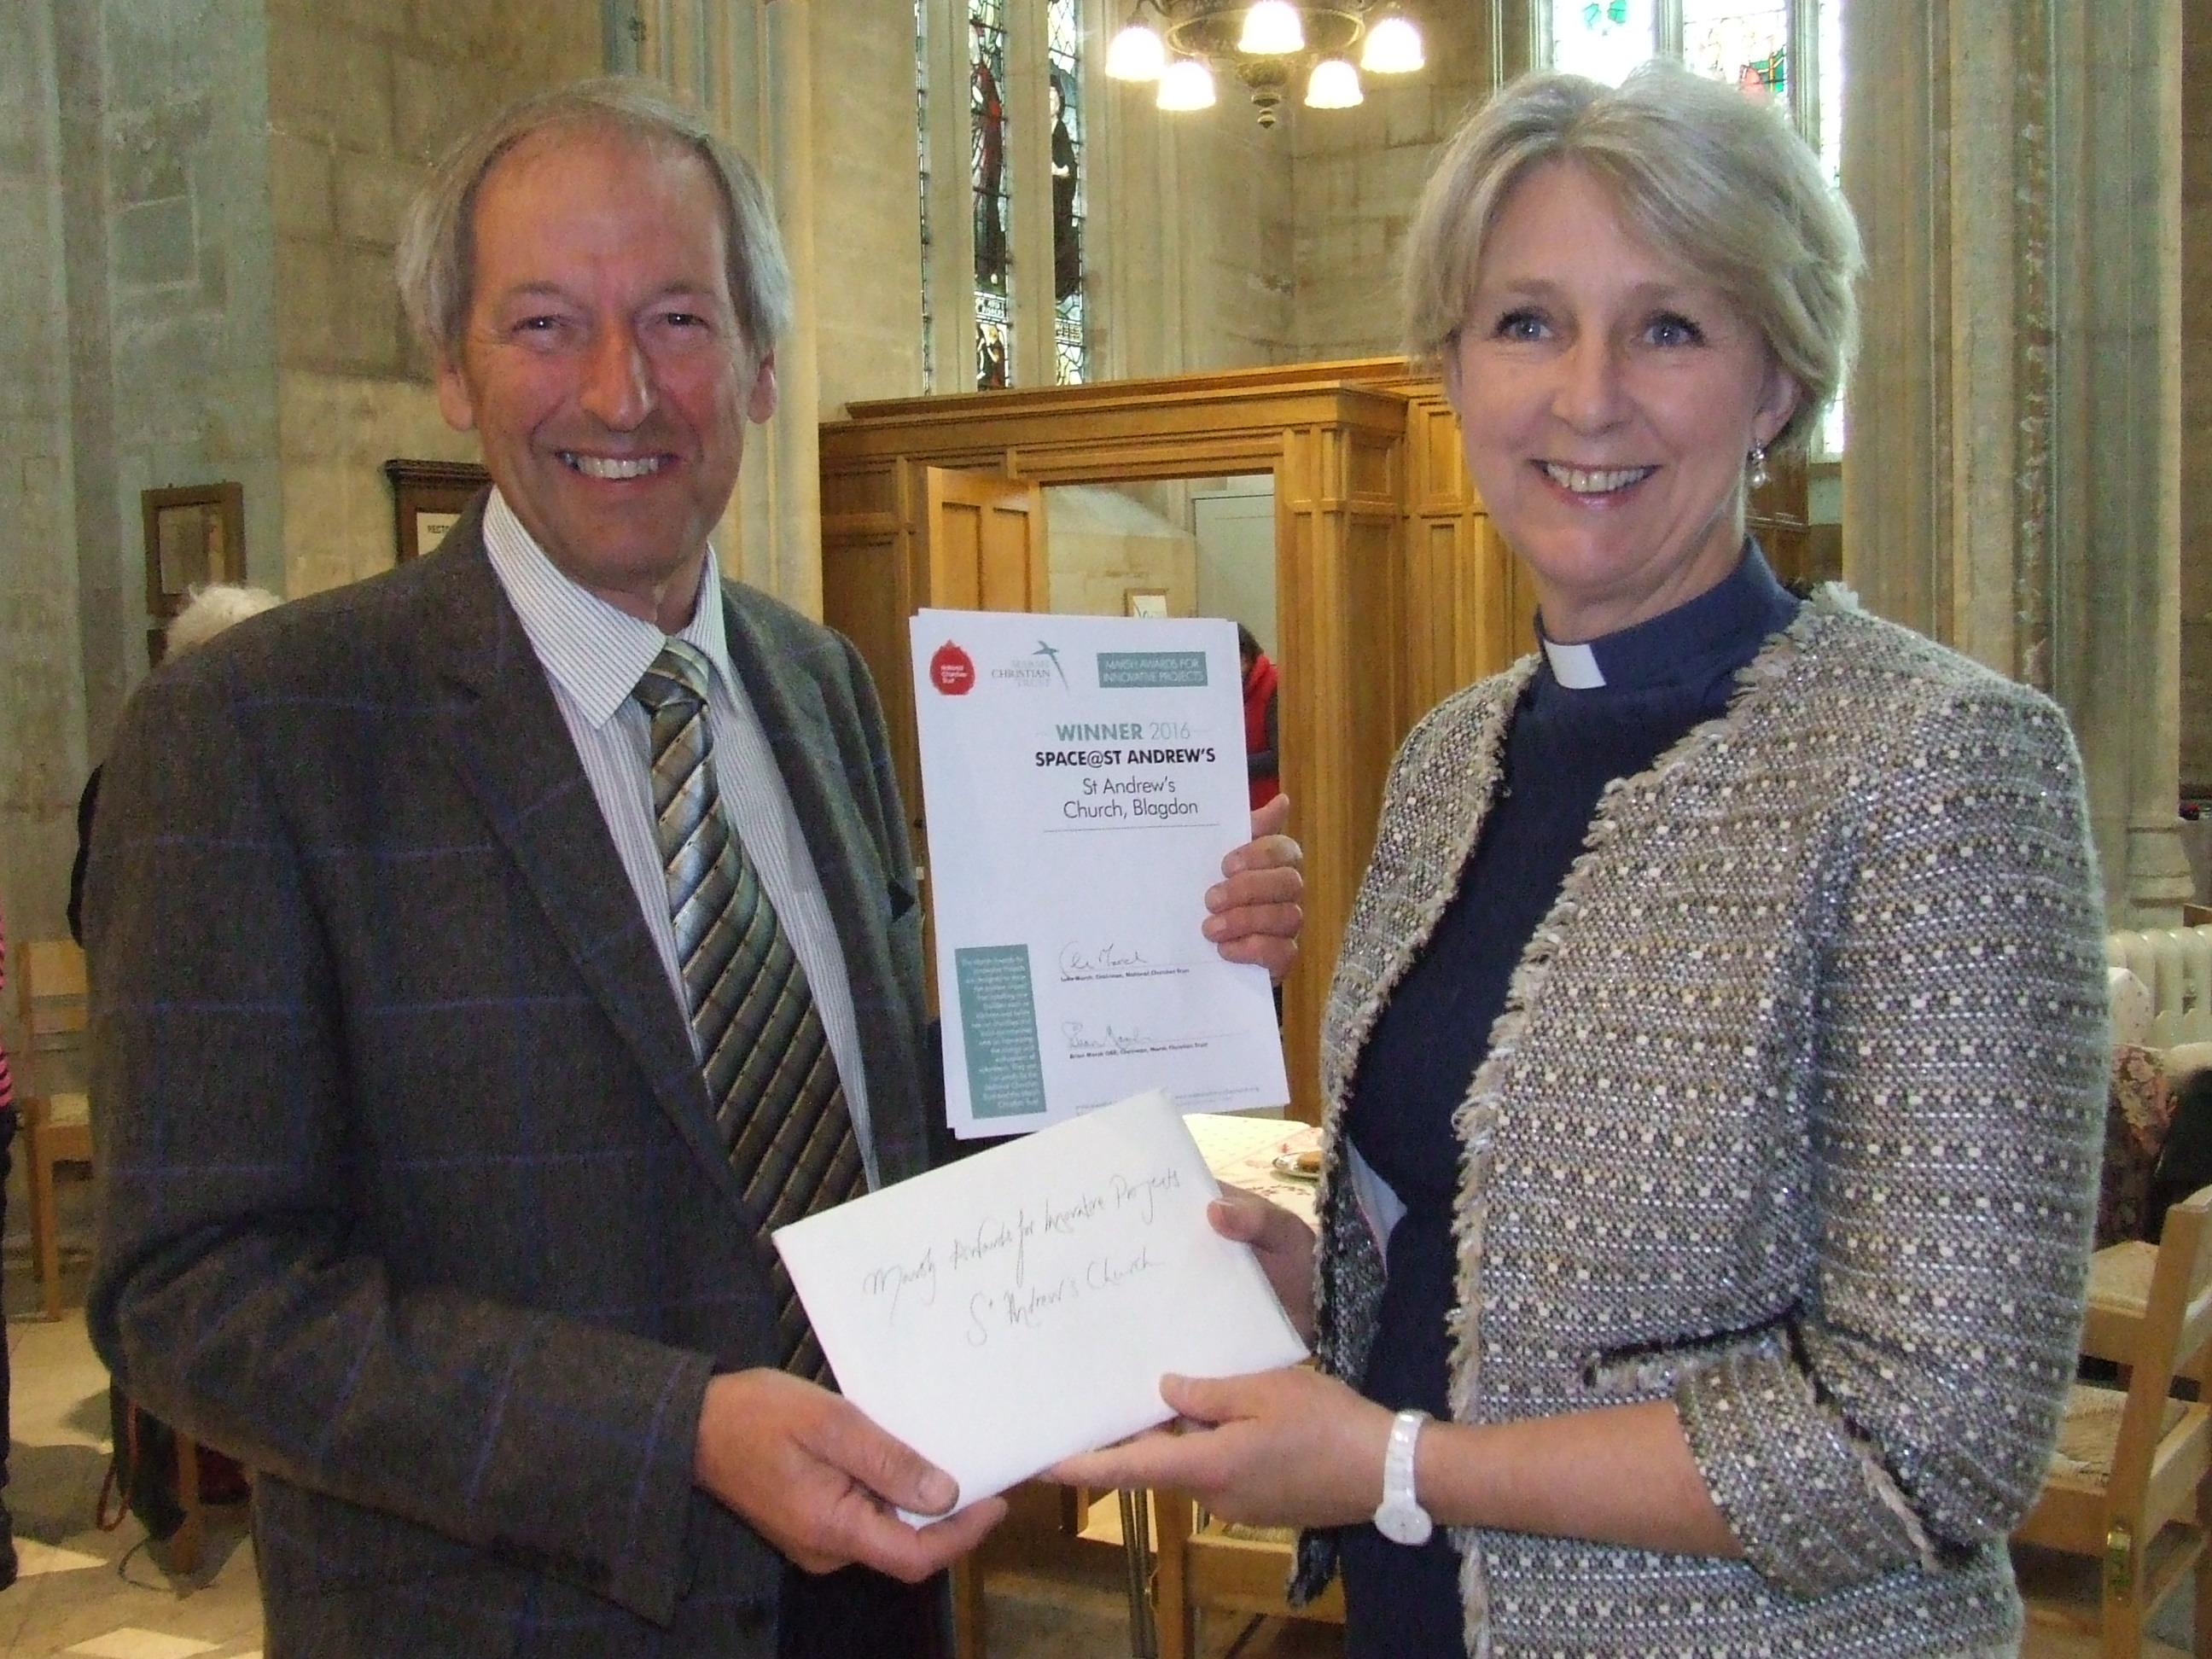 Chris Hawkings of the Somerset Historic Churches Trust presents Rev Jane Chamberlain, Rector of St Andrew's Blagdon, with the winner's certificate (c Ros Anstey)